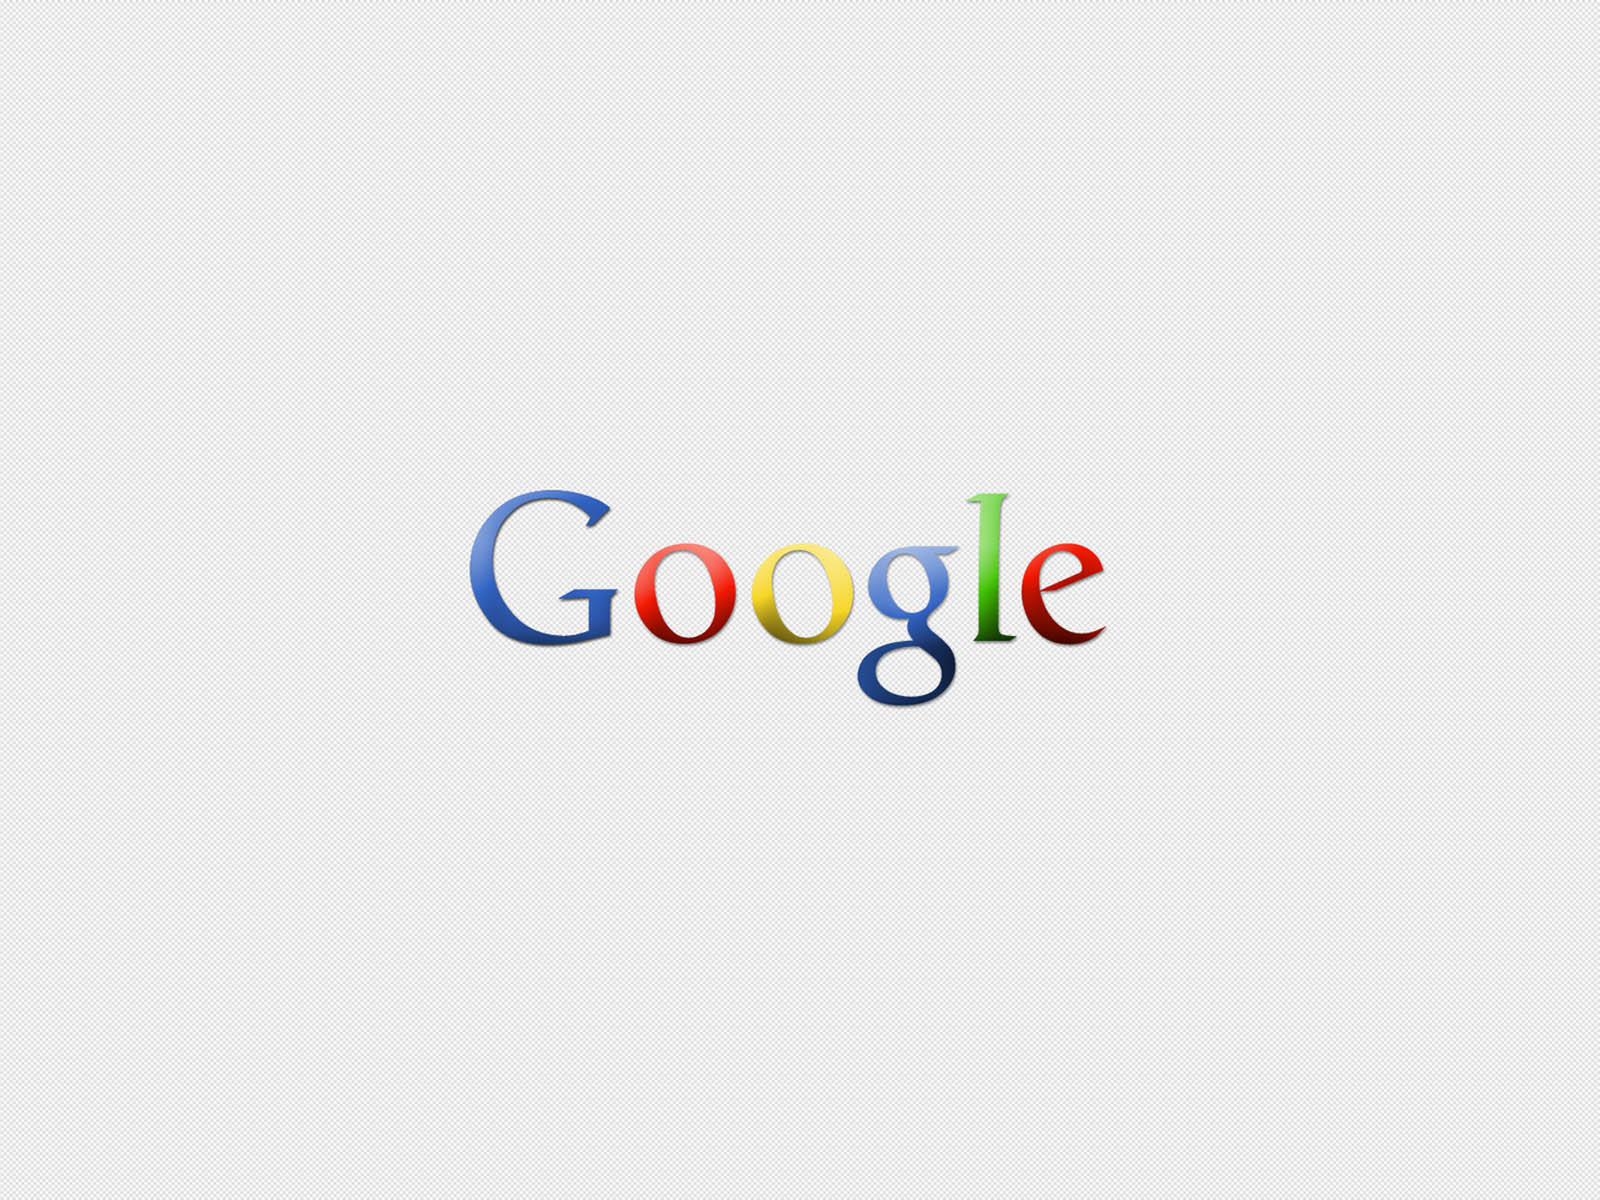 Google Backgrounds And Wallpapers ~ Desktop Wallpaper